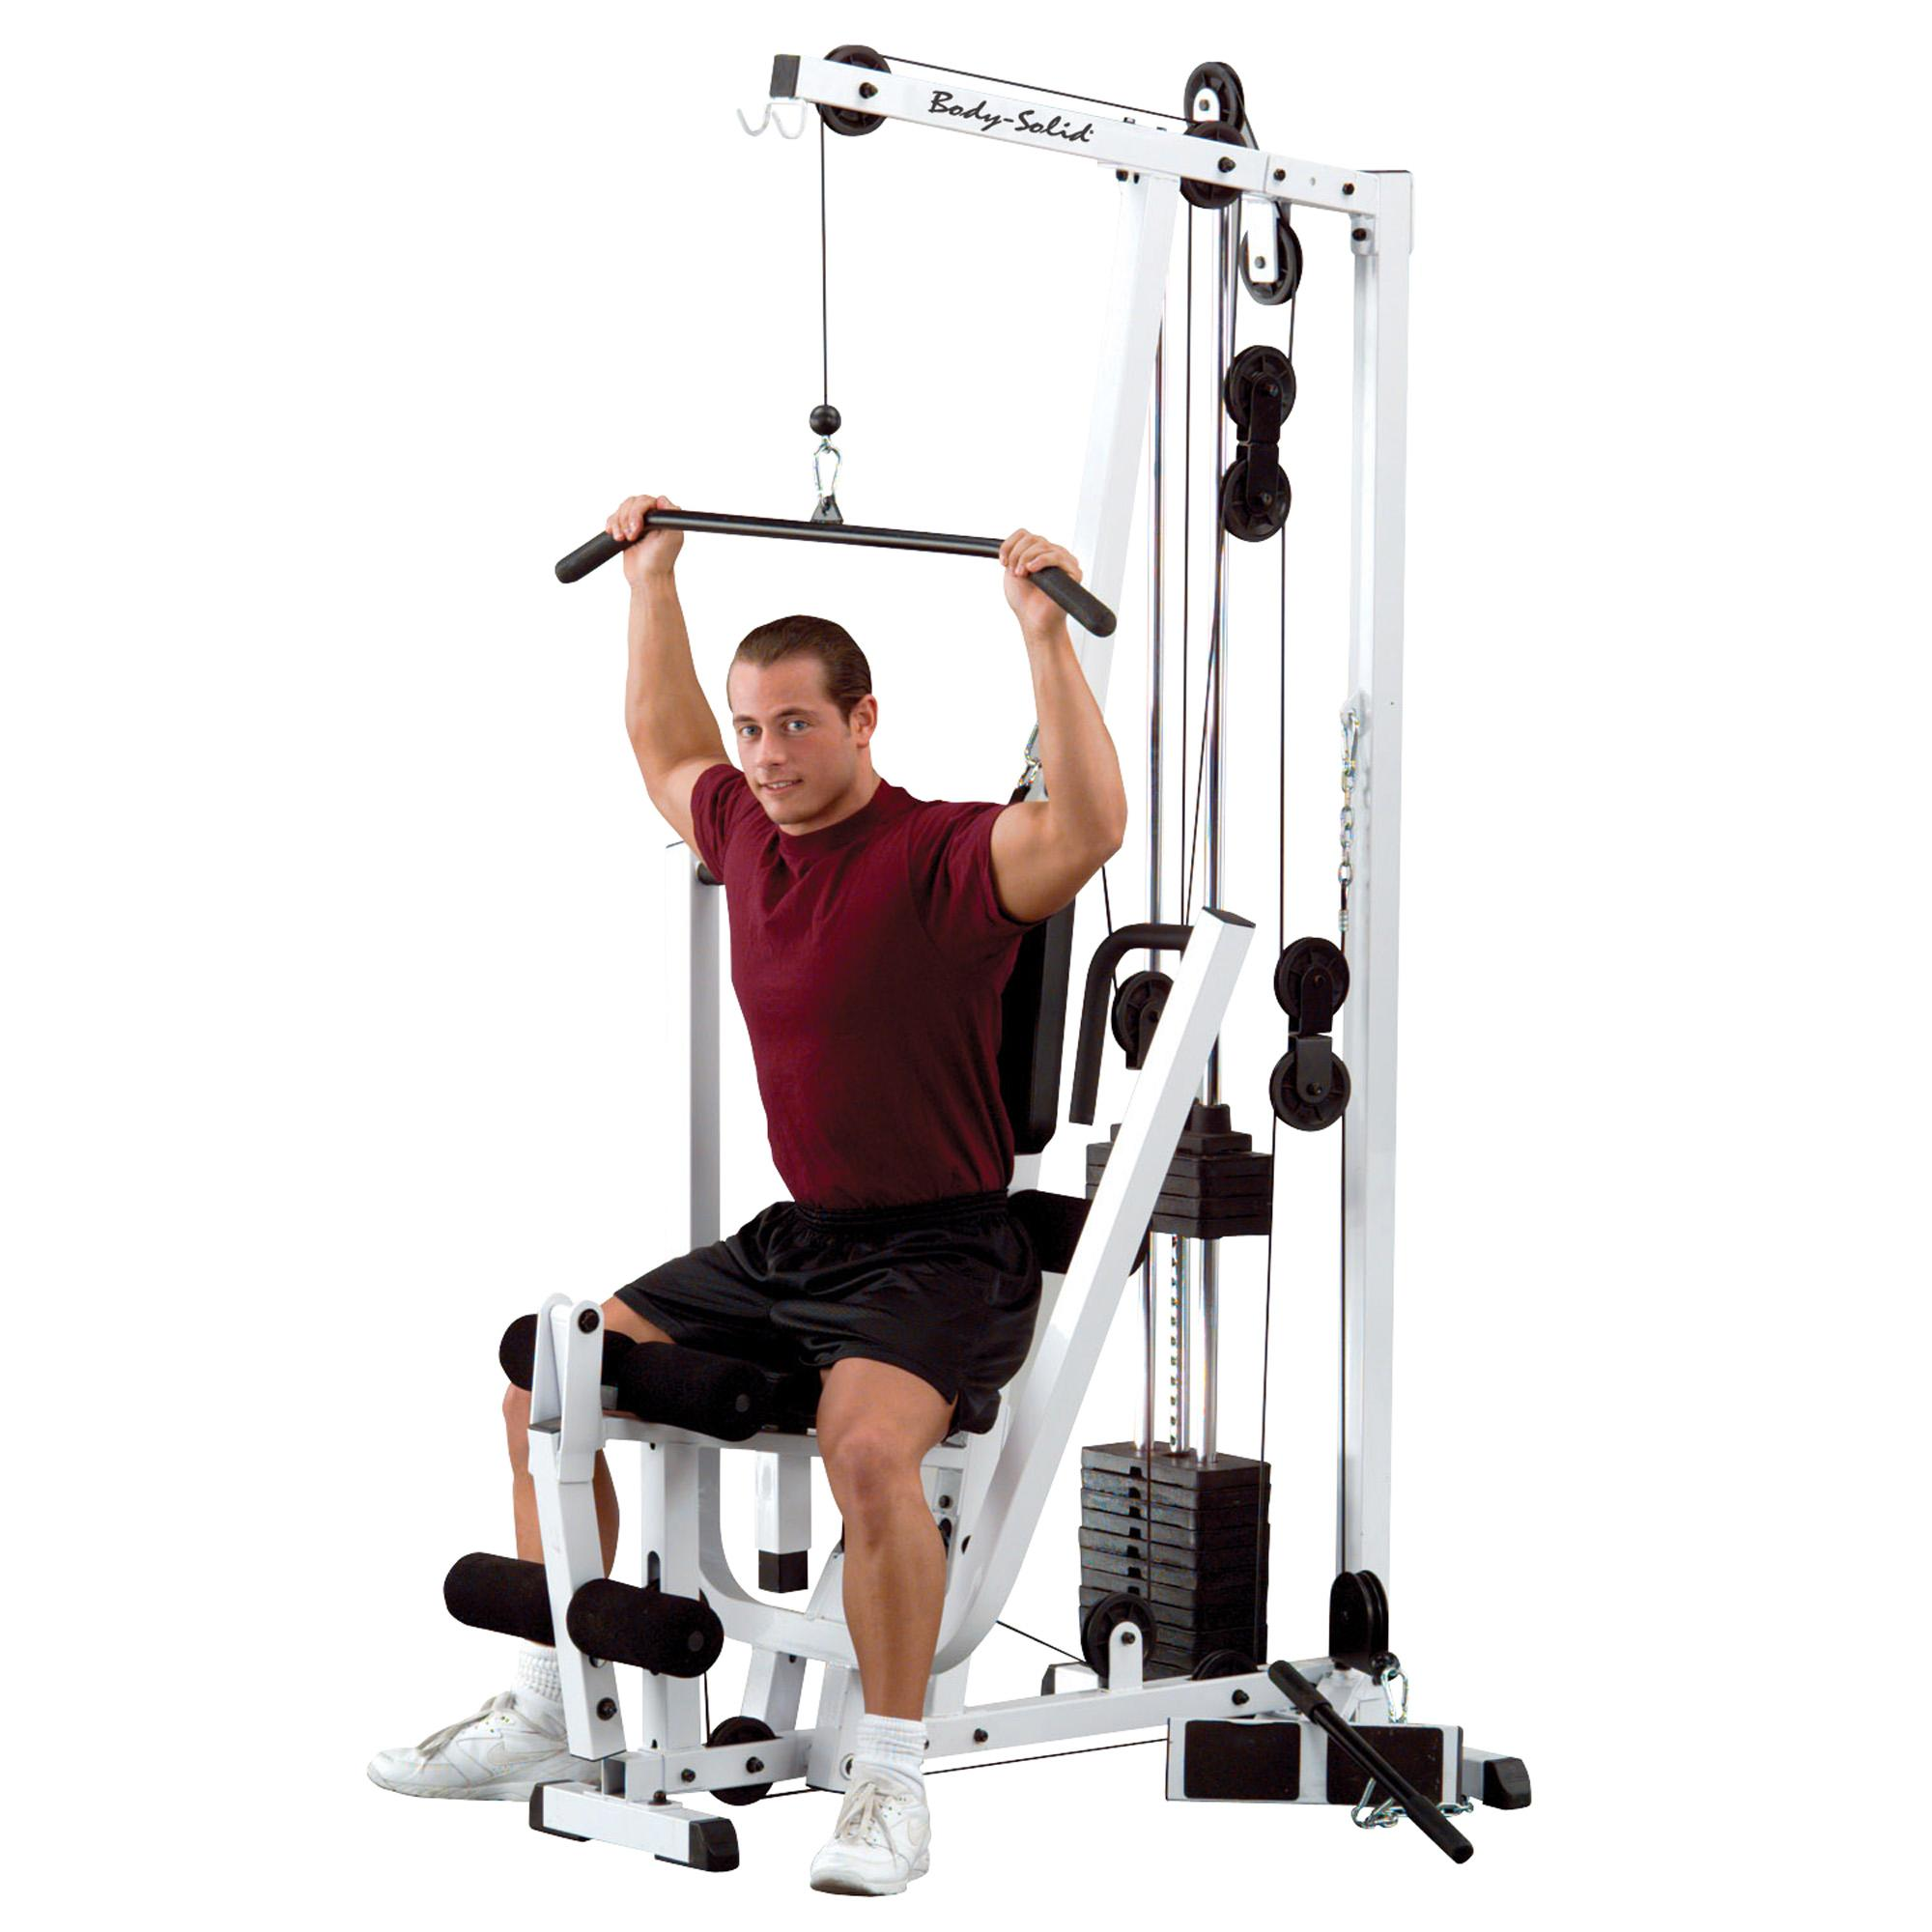 Amazoncom Body Solid EXMS Single Stack Home Gym Sports - 20 problems every gym goer can relate